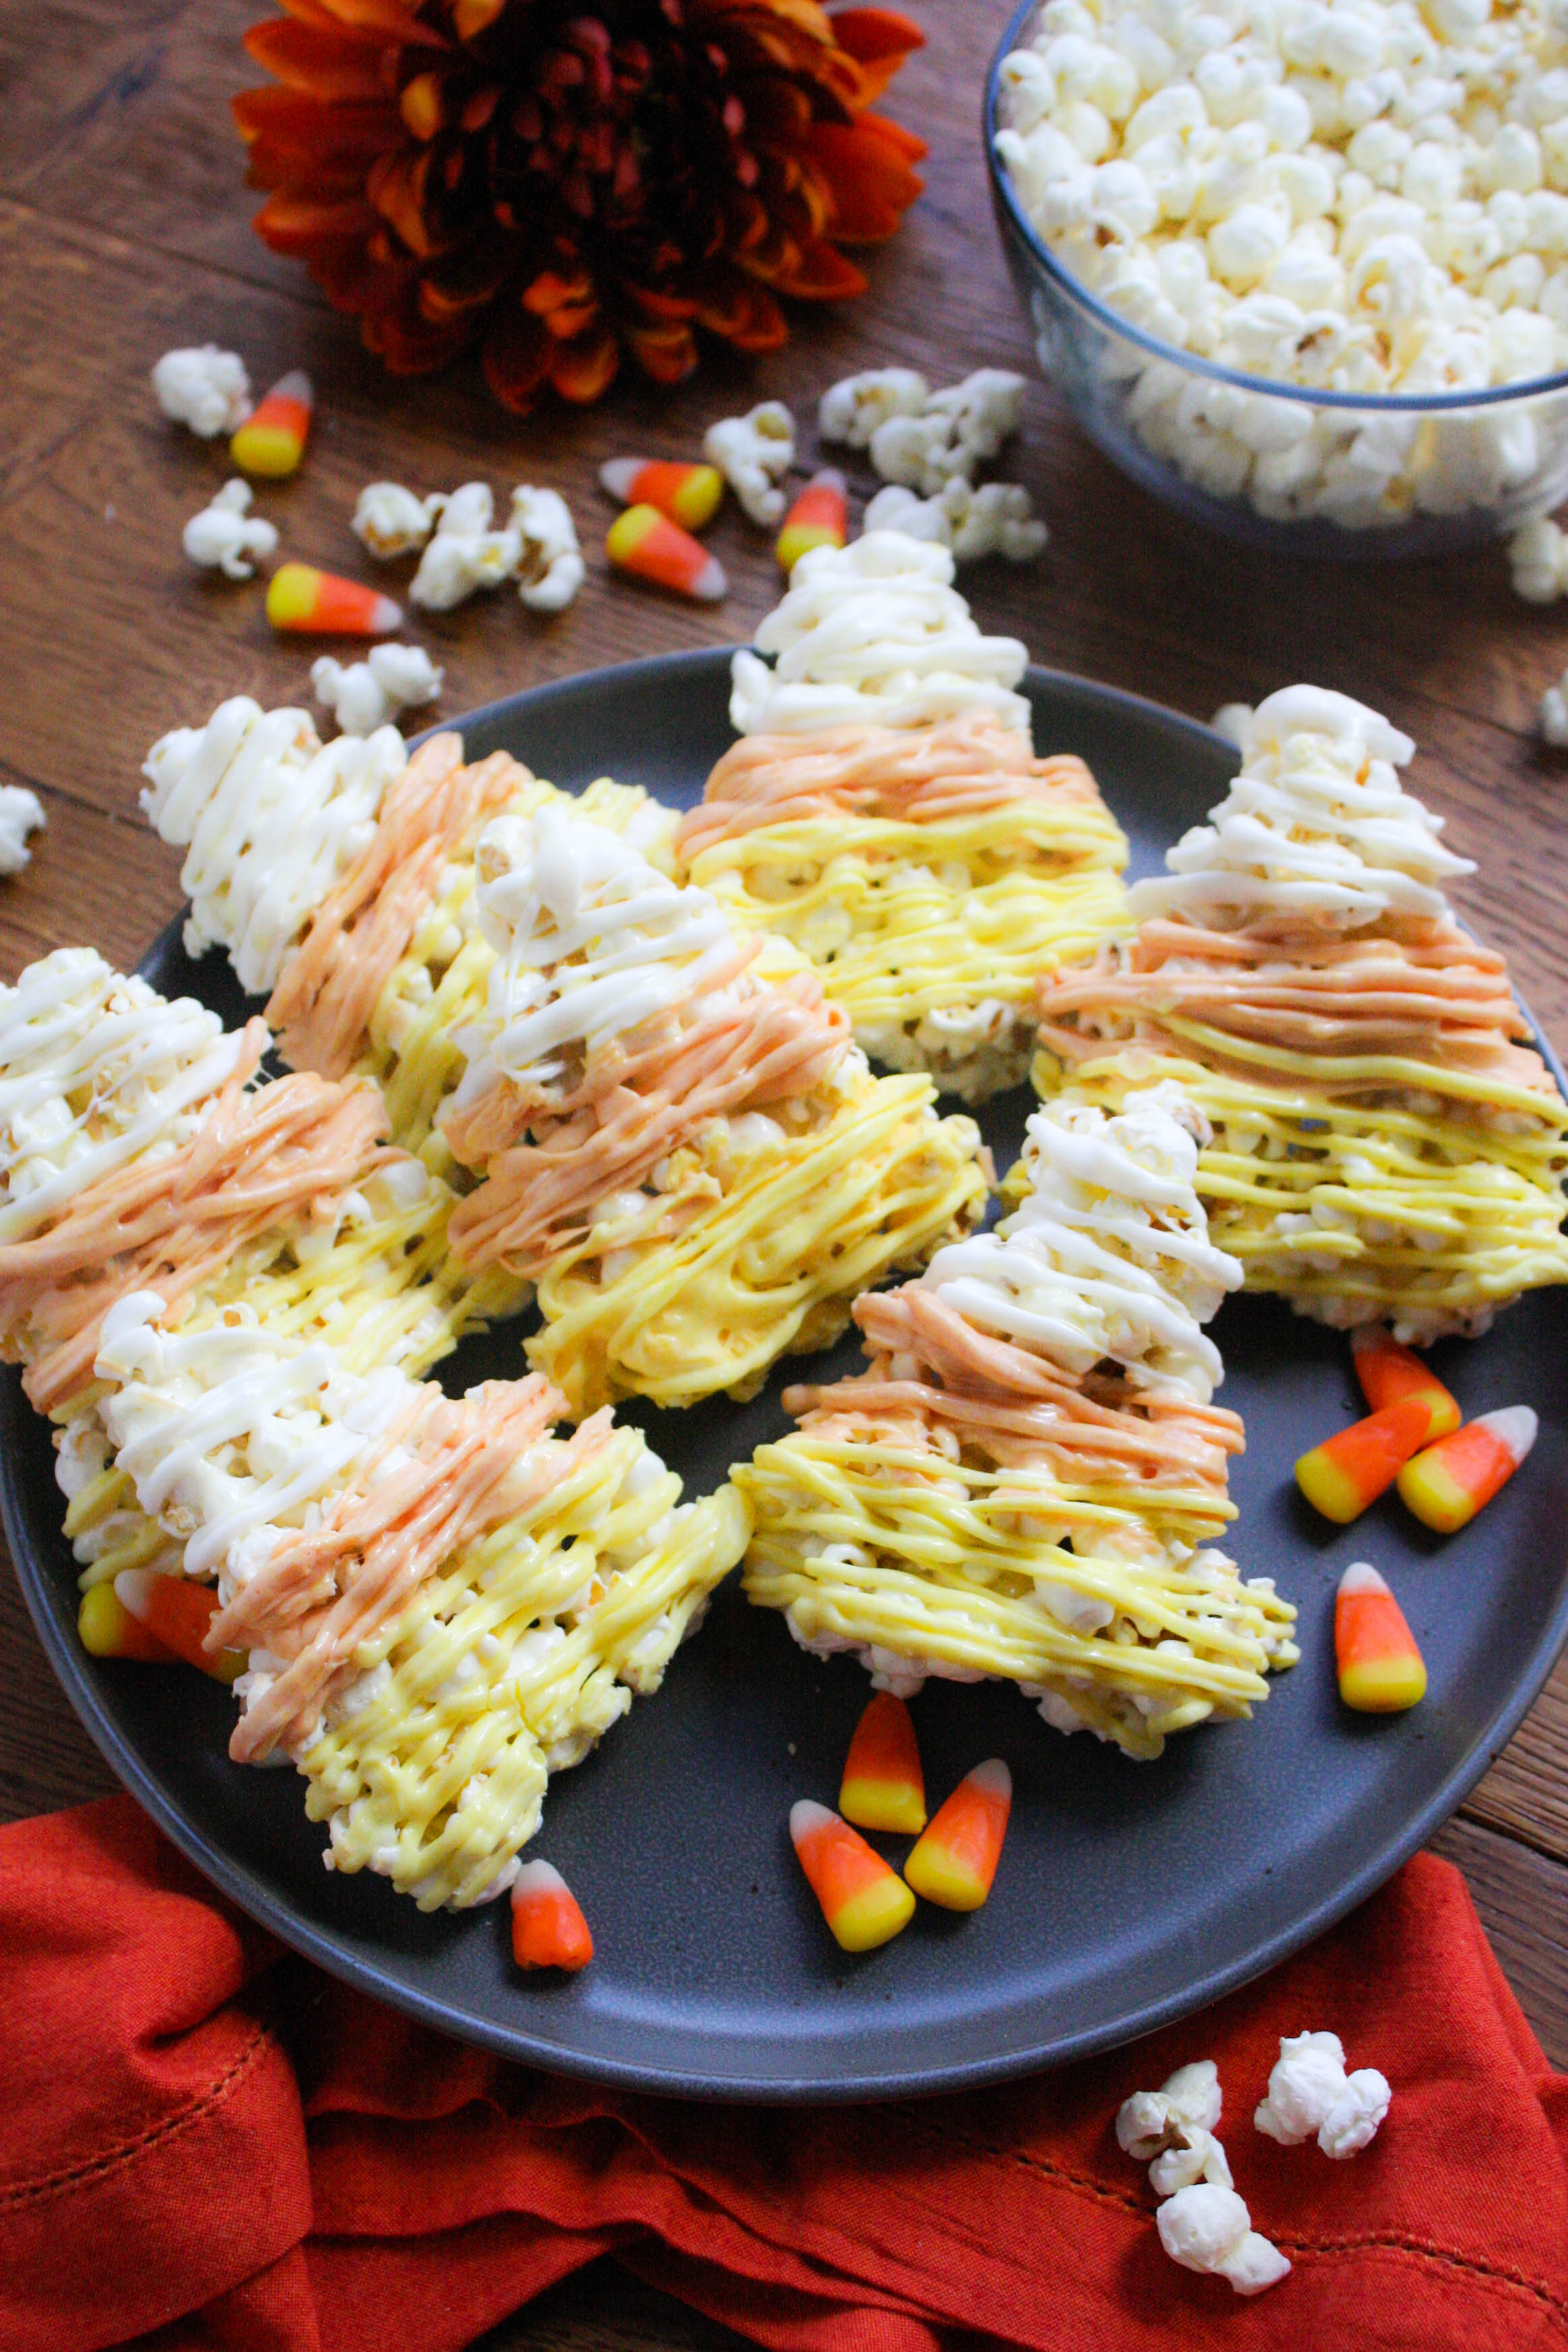 Candy Corn-Shaped Popcorn Balls are festive and fabulous for Halloween! Make these Candy Corn-Shaped Popcorn Balls for a Halloween treat!